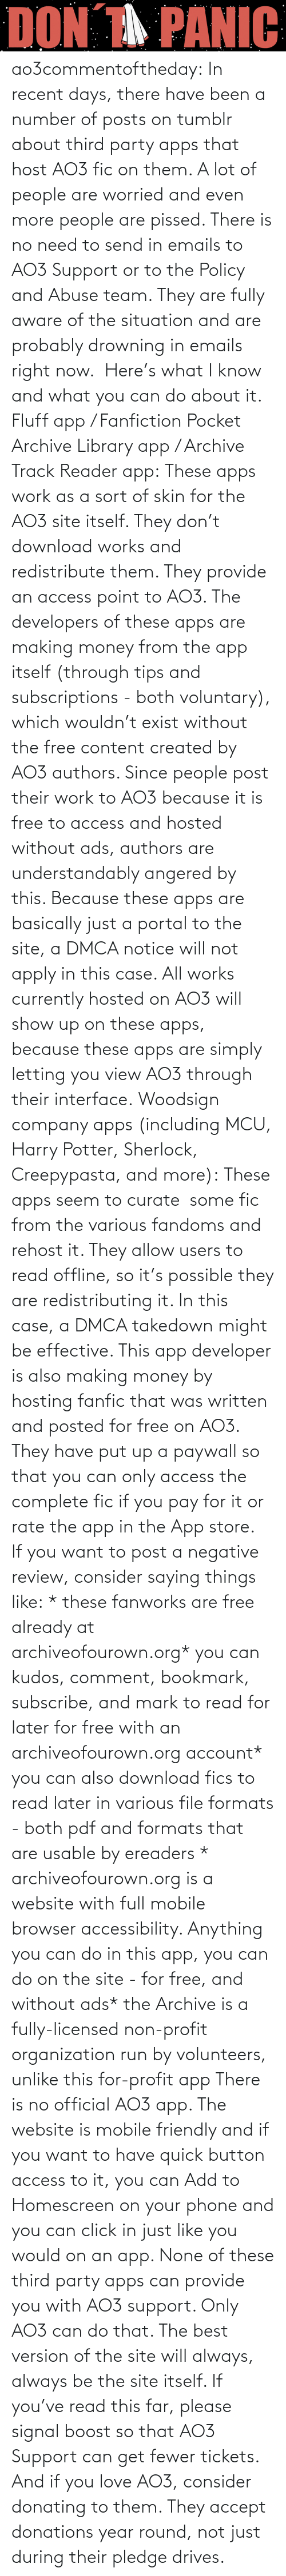 potter: ao3commentoftheday: In recent days, there have been a number of posts on tumblr about third party apps that host AO3 fic on them. A lot of people are worried and even more people are pissed.  There is no need to send in emails to AO3 Support or to the Policy and Abuse team. They are fully aware of the situation and are probably drowning in emails right now.  Here's what I know and what you can do about it.  Fluff app / Fanfiction Pocket Archive Library app / Archive Track Reader app: These apps work as a sort of skin for the AO3 site itself. They don't download works and redistribute them. They provide an access point to AO3.  The developers of these apps are making money from the app itself (through tips and subscriptions - both voluntary), which wouldn't exist without the free content created by AO3 authors. Since people post their work to AO3 because it is free to access and hosted without ads, authors are understandably angered by this.  Because these apps are basically just a portal to the site, a DMCA notice will not apply in this case. All works currently hosted on AO3 will show up on these apps, because these apps are simply letting you view AO3 through their interface. Woodsign company apps (including MCU, Harry Potter, Sherlock, Creepypasta, and more): These apps seem to curate  some fic from the various fandoms and rehost it. They allow users to read offline, so it's possible they are redistributing it. In this case, a DMCA takedown might be effective.  This app developer is also making money by hosting fanfic that was written and posted for free on AO3. They have put up a paywall so that you can only access the complete fic if you pay for it or rate the app in the App store.  If you want to post a negative review, consider saying things like: * these fanworks are free already at archiveofourown.org* you can kudos, comment, bookmark, subscribe, and mark to read for later for free with an archiveofourown.org account* you can also download fics to read later in various file formats - both pdf and formats that are usable by ereaders * archiveofourown.org is a website with full mobile browser accessibility. Anything you can do in this app, you can do on the site - for free, and without ads* the Archive is a fully-licensed non-profit organization run by volunteers, unlike this for-profit app  There is no official AO3 app. The website is mobile friendly and if you want to have quick button access to it, you can Add to Homescreen on your phone and you can click in just like you would on an app. None of these third party apps can provide you with AO3 support. Only AO3 can do that. The best version of the site will always, always be the site itself.  If you've read this far, please signal boost so that AO3 Support can get fewer tickets. And if you love AO3, consider donating to them. They accept donations year round, not just during their pledge drives.